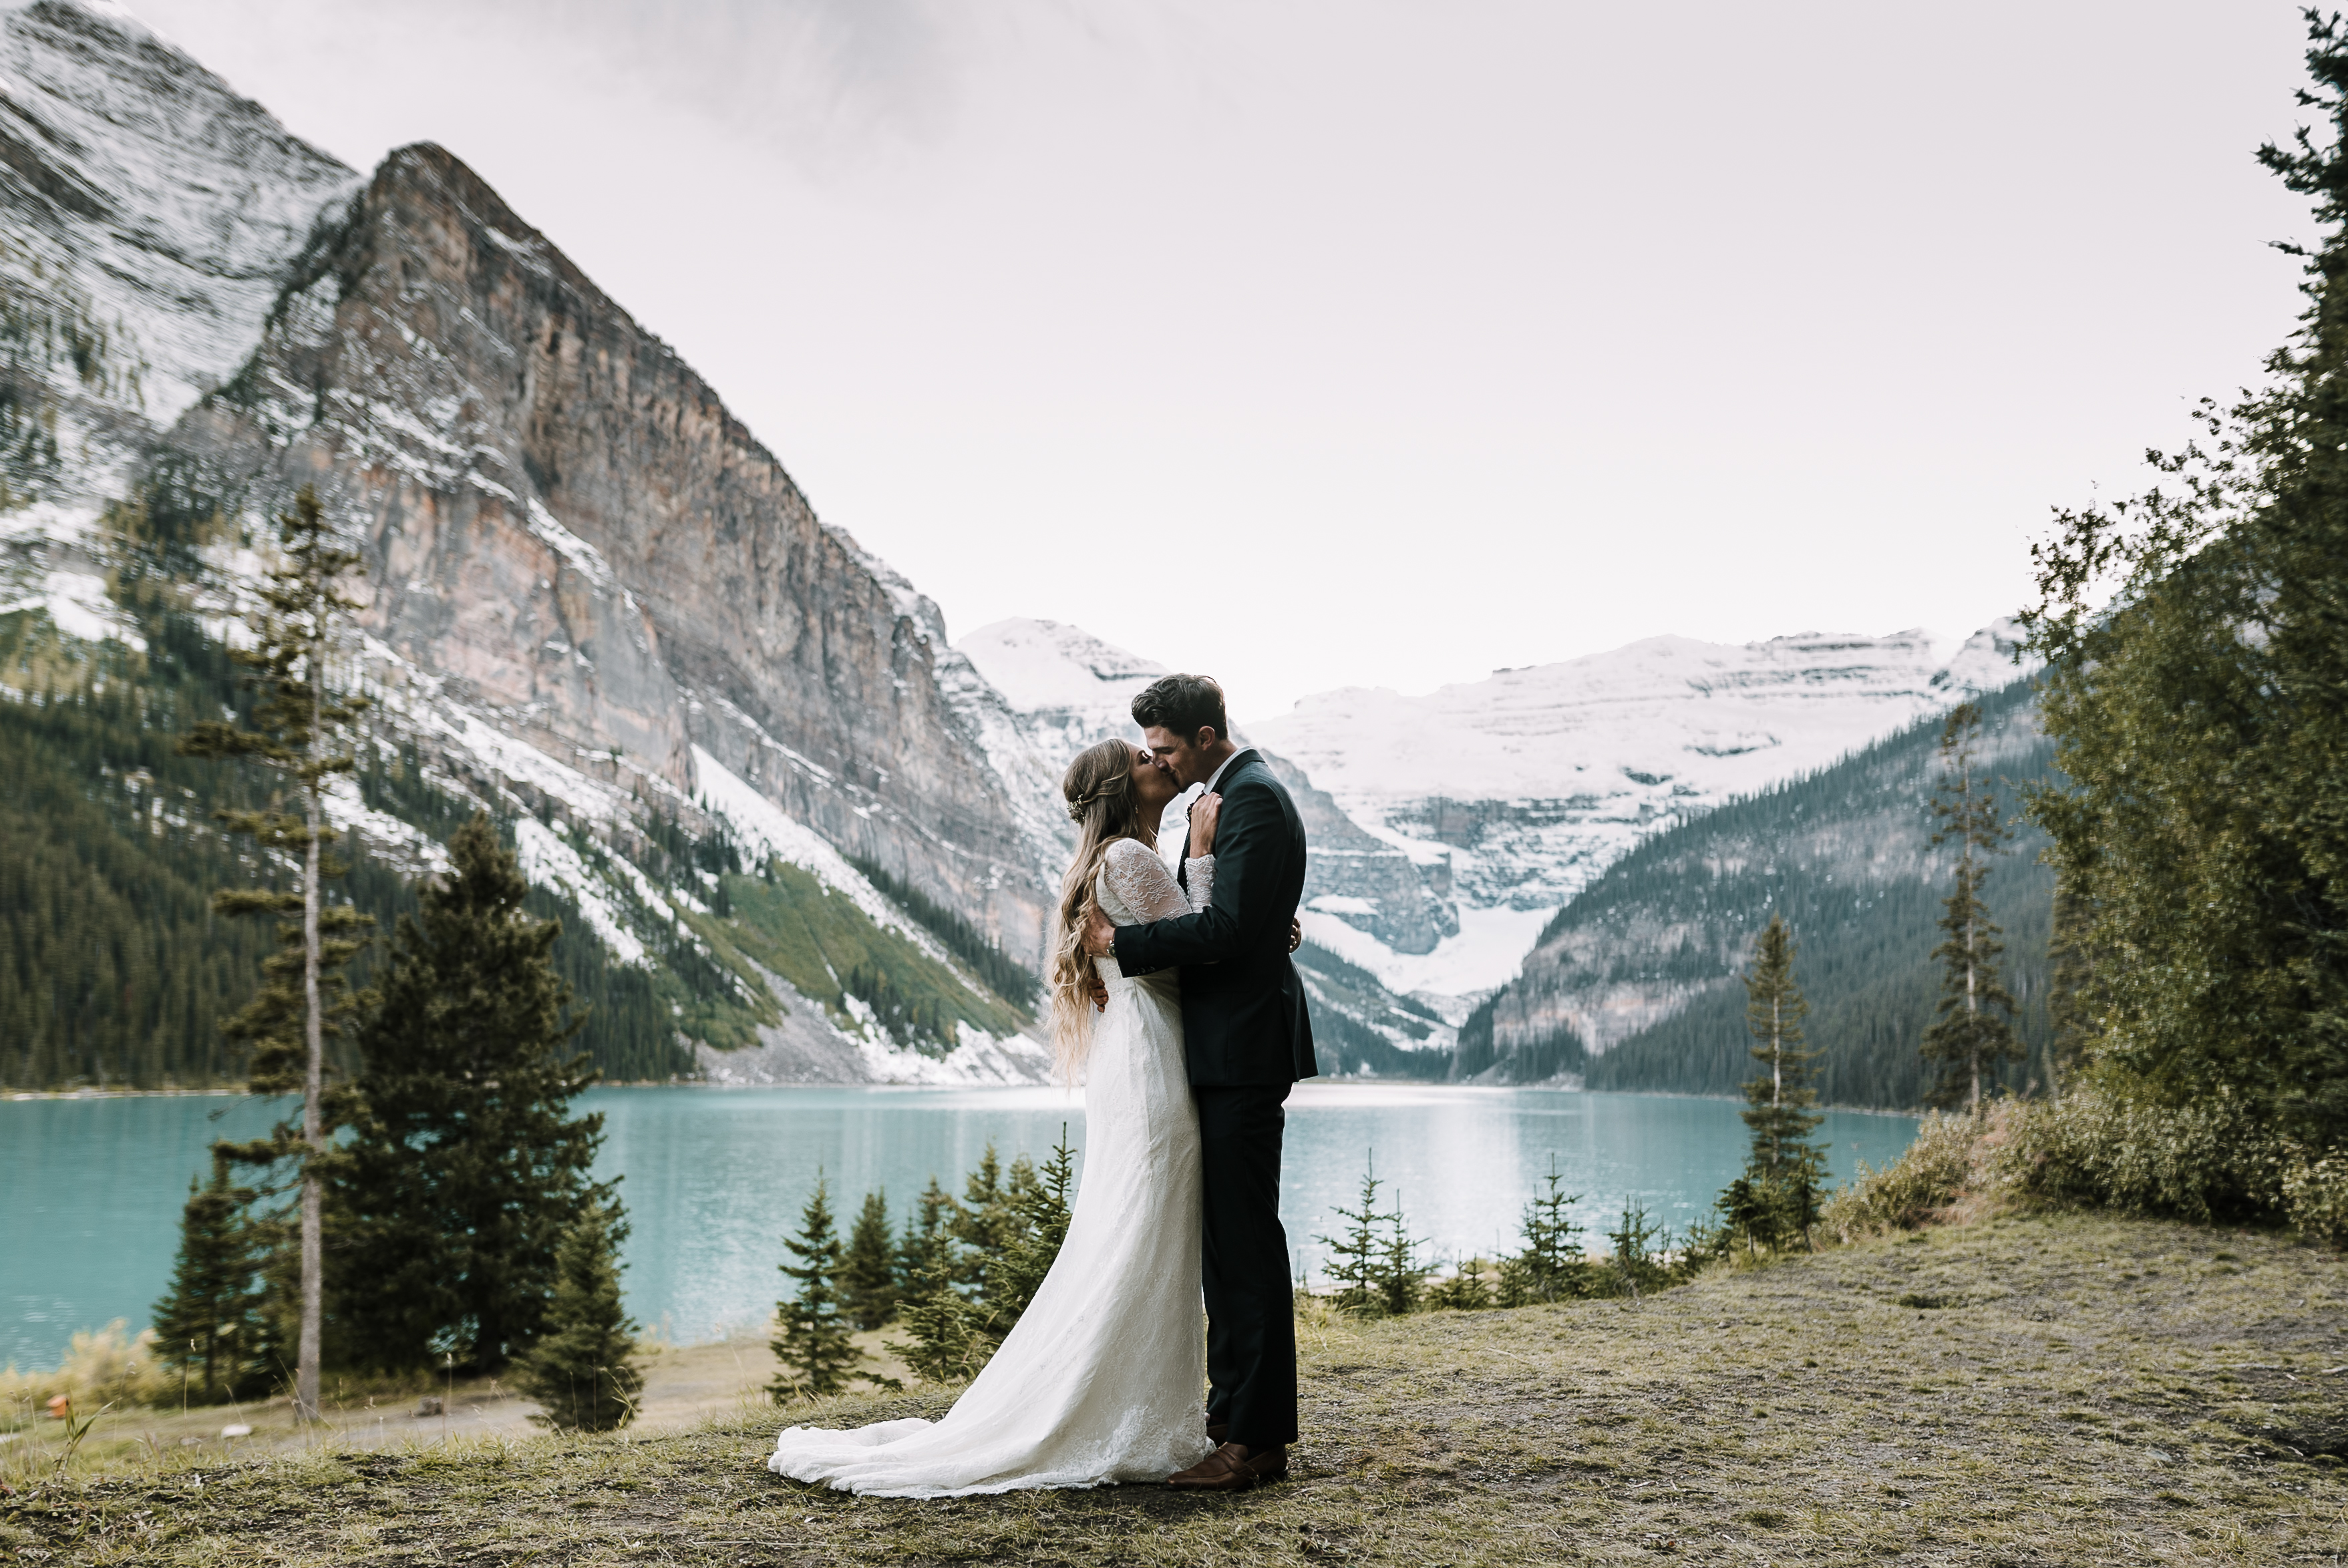 Kristen + Evan | Lake Louise, Canada | Post Hotel